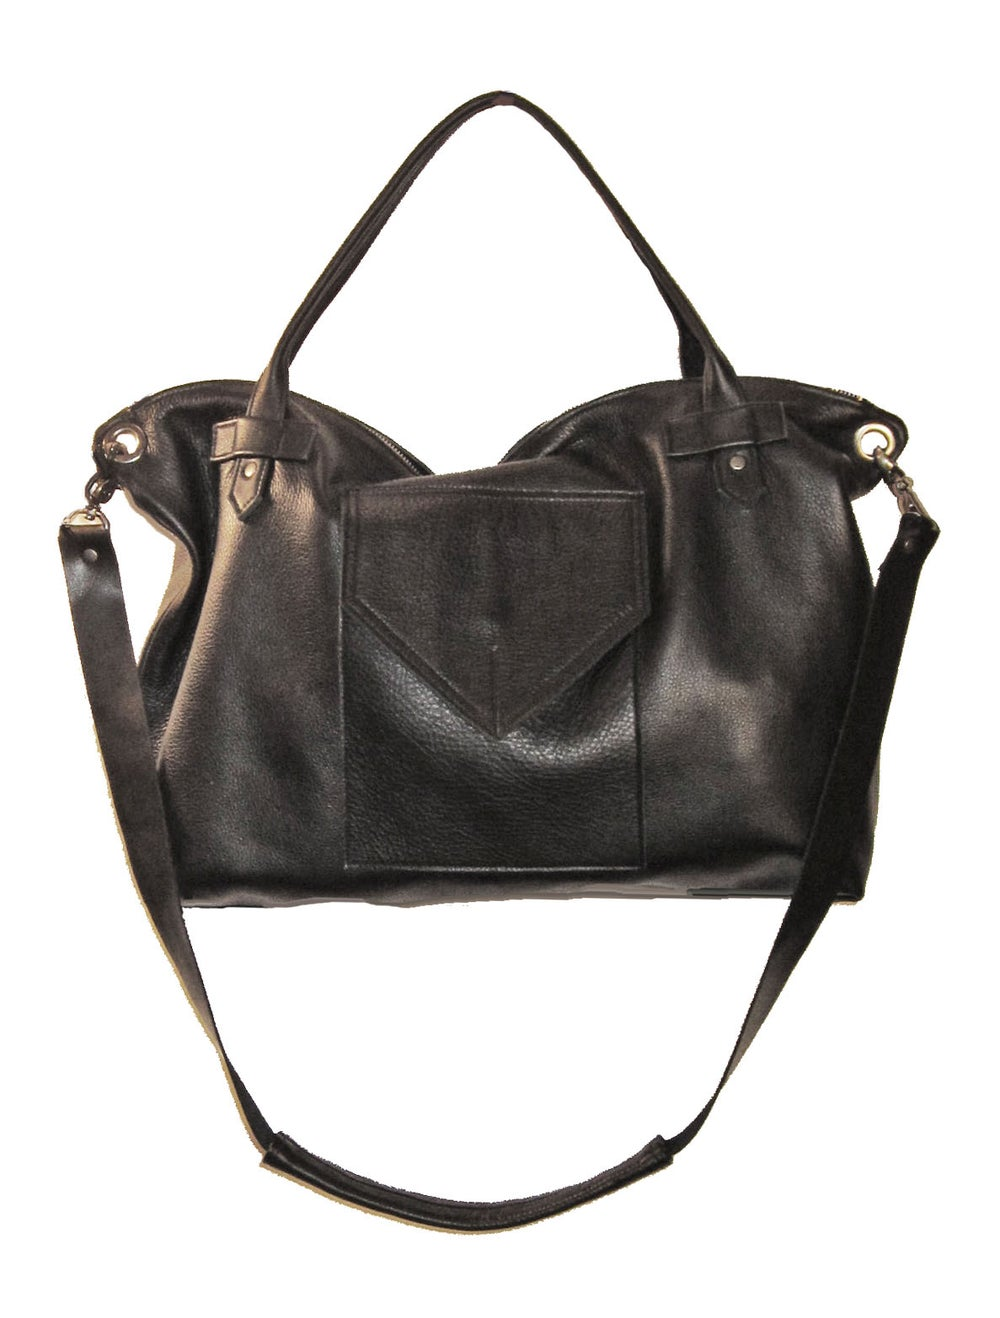 Image of The London Black Leather Bag